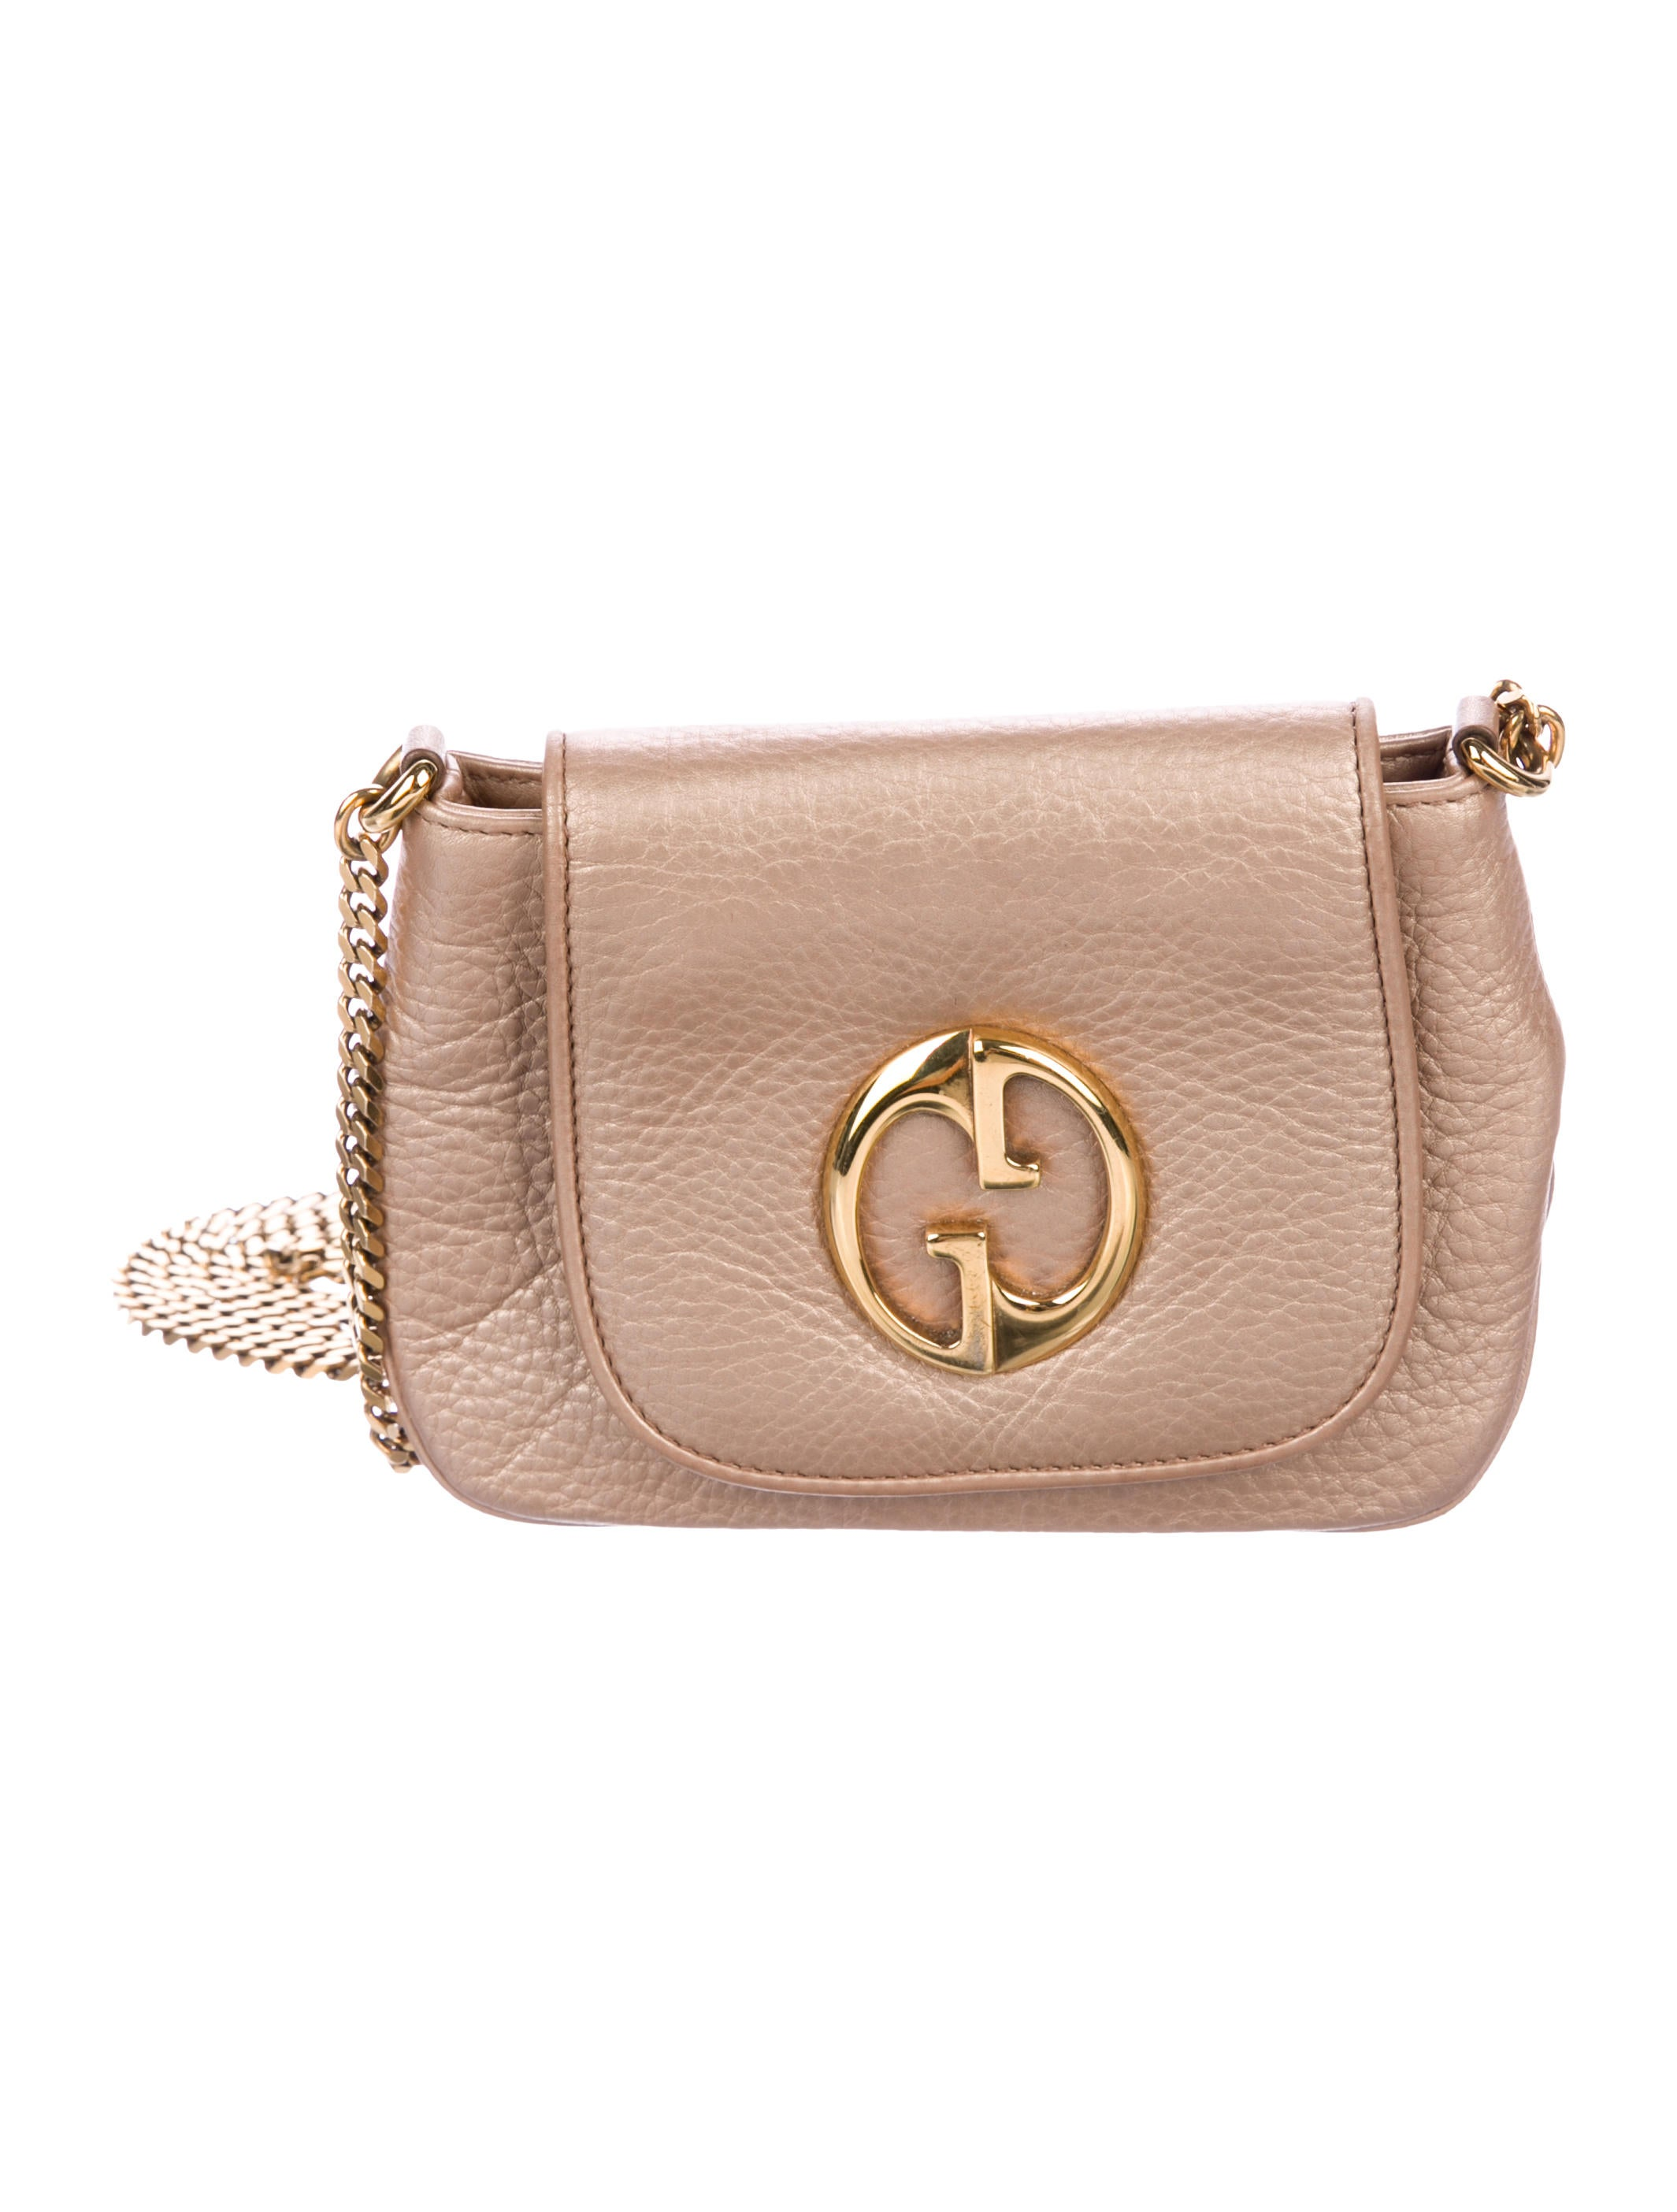 1f9a65ab6a8 Gucci 1973 Crossbody Bag - Handbags - GUC230920 | The RealReal